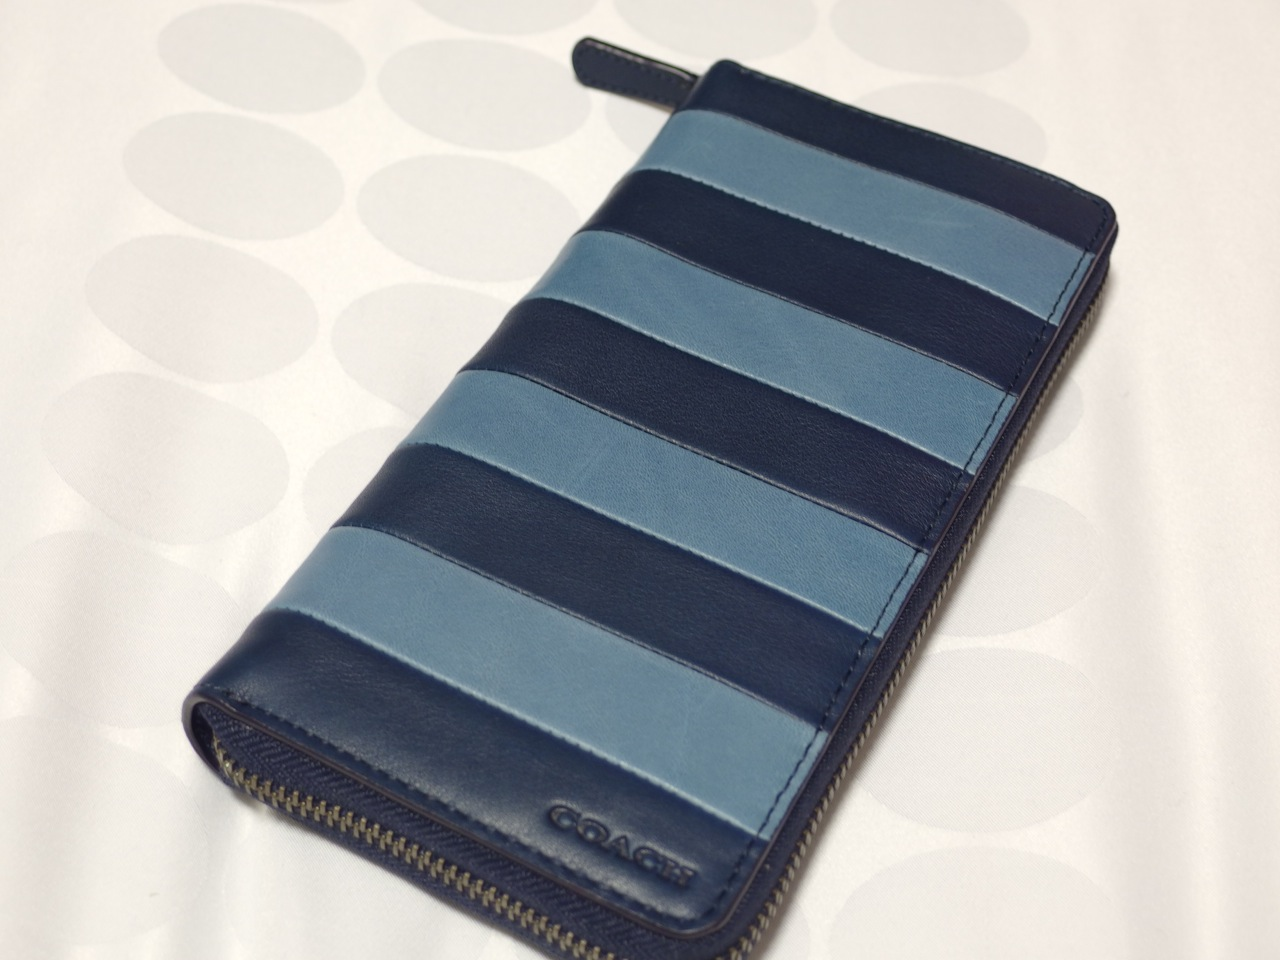 f6df3c2e1617 BLEECKER ACCORDION WALLET IN BAR STRIPE LEATHERという長いネーミングの財布。